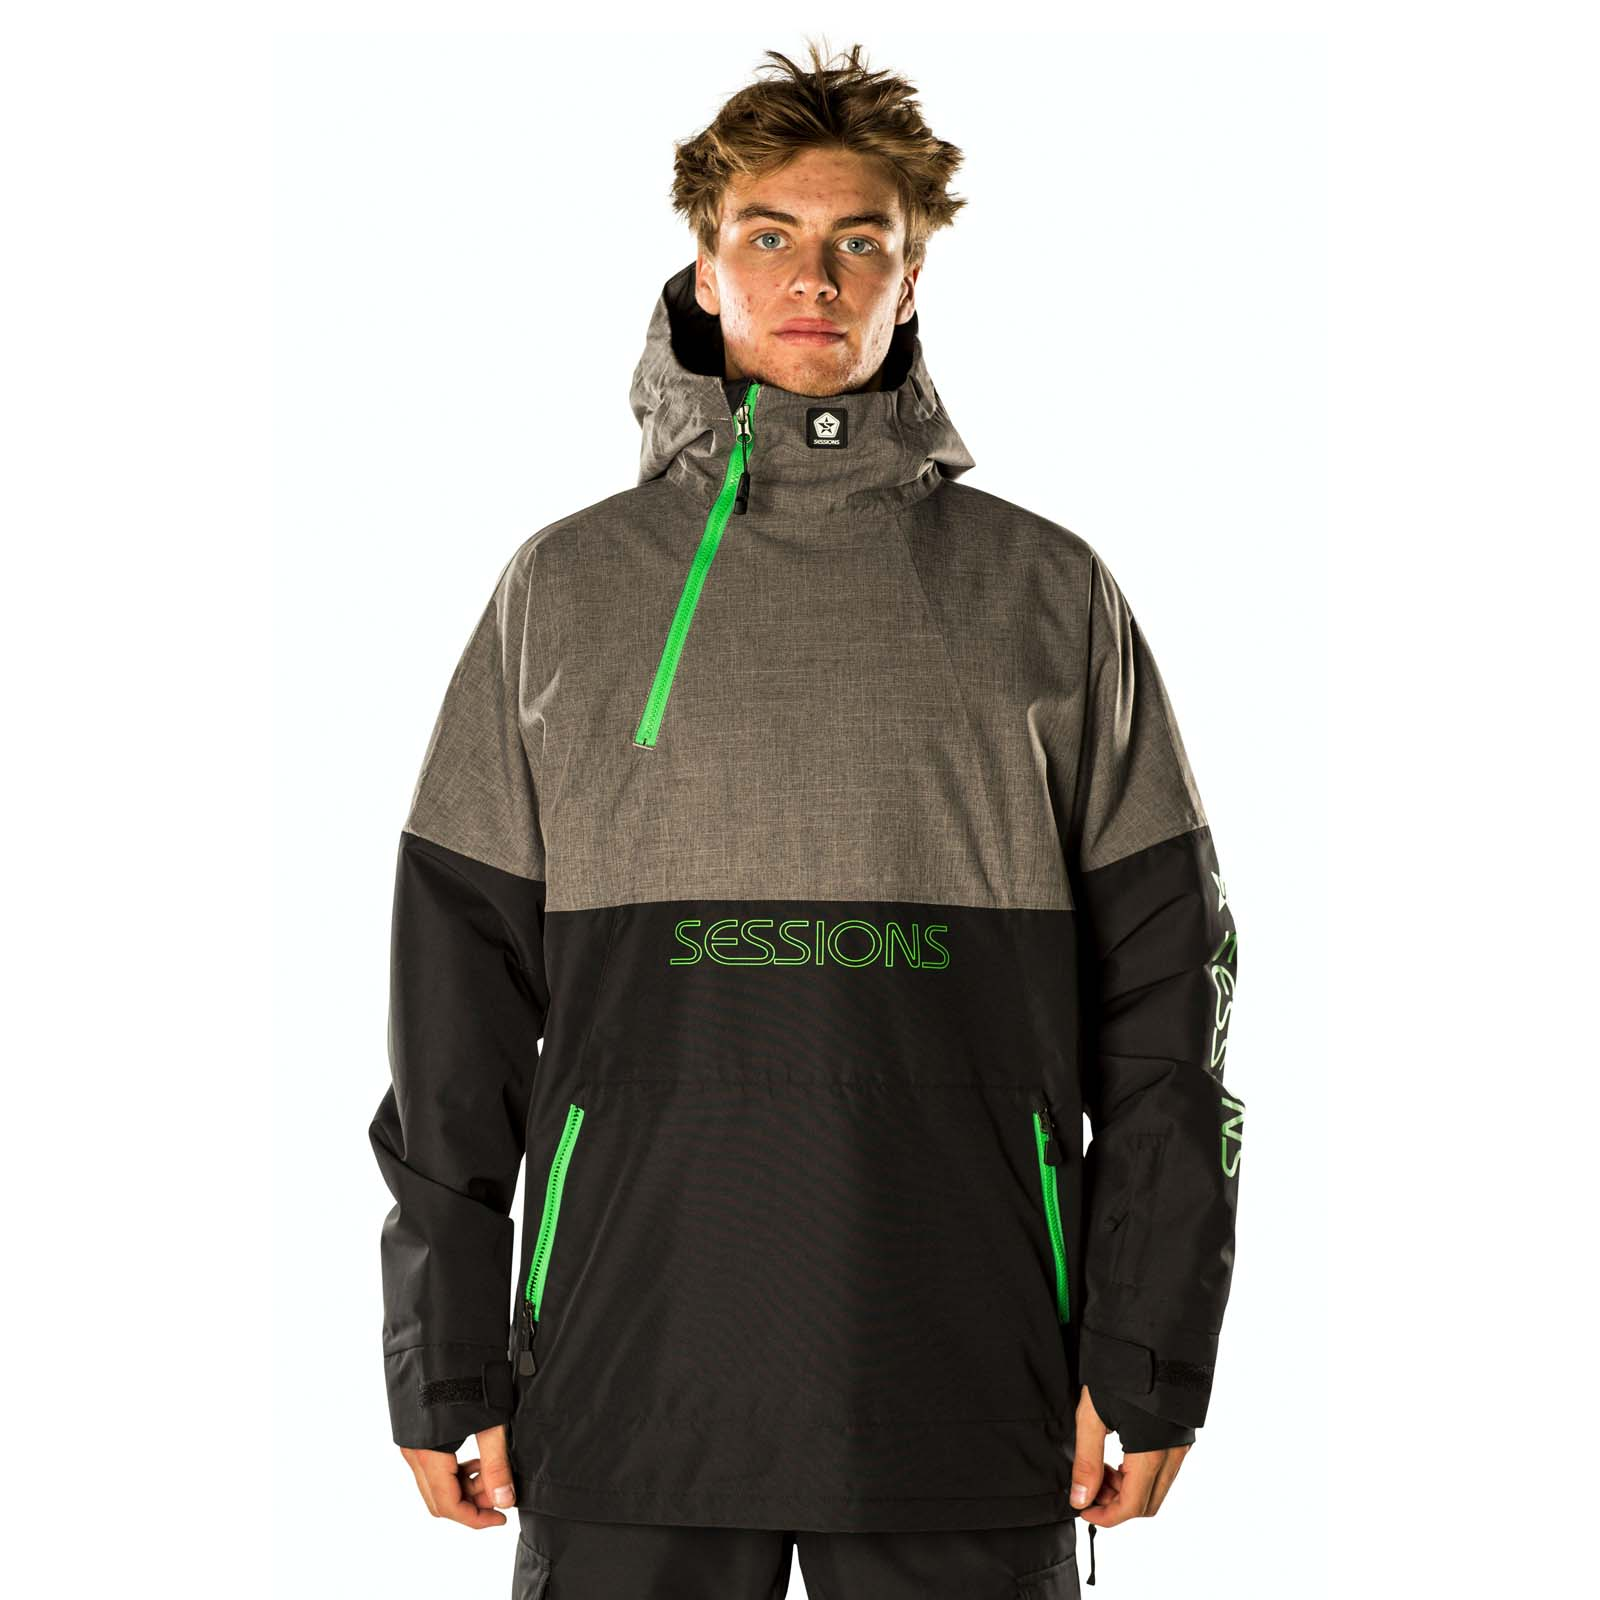 Sessions 21/22 Men's Outerwear